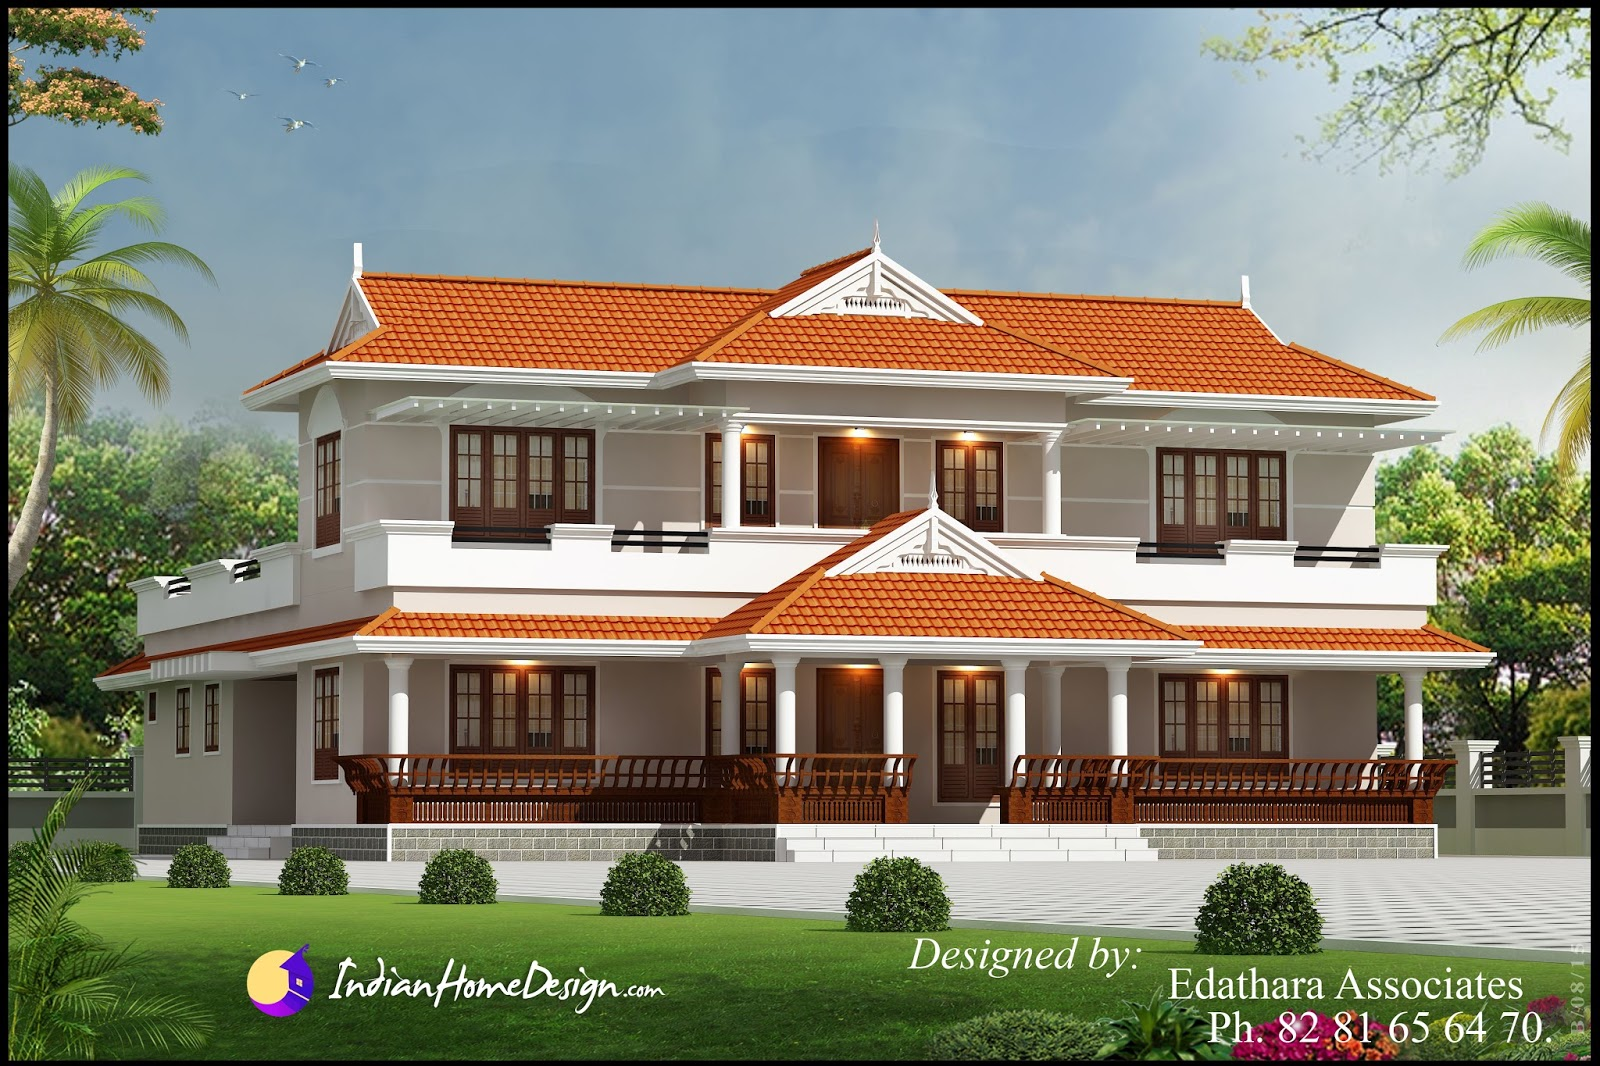 Kerala style 2288 sqft villa design traditional double for Traditional indian house designs